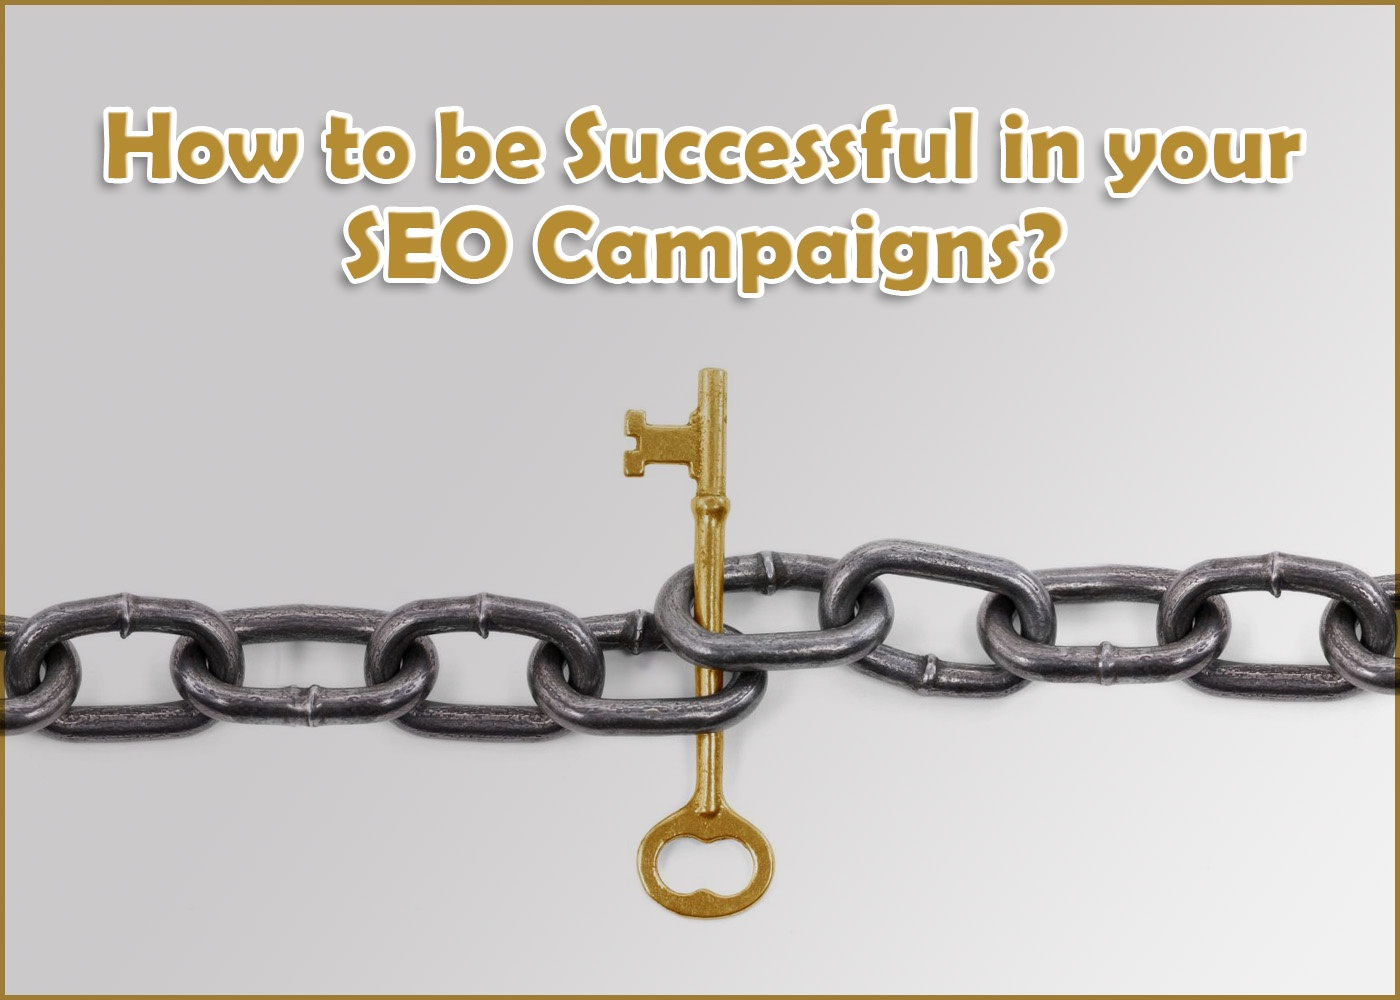 How to be Successful in your SEO Campaigns?